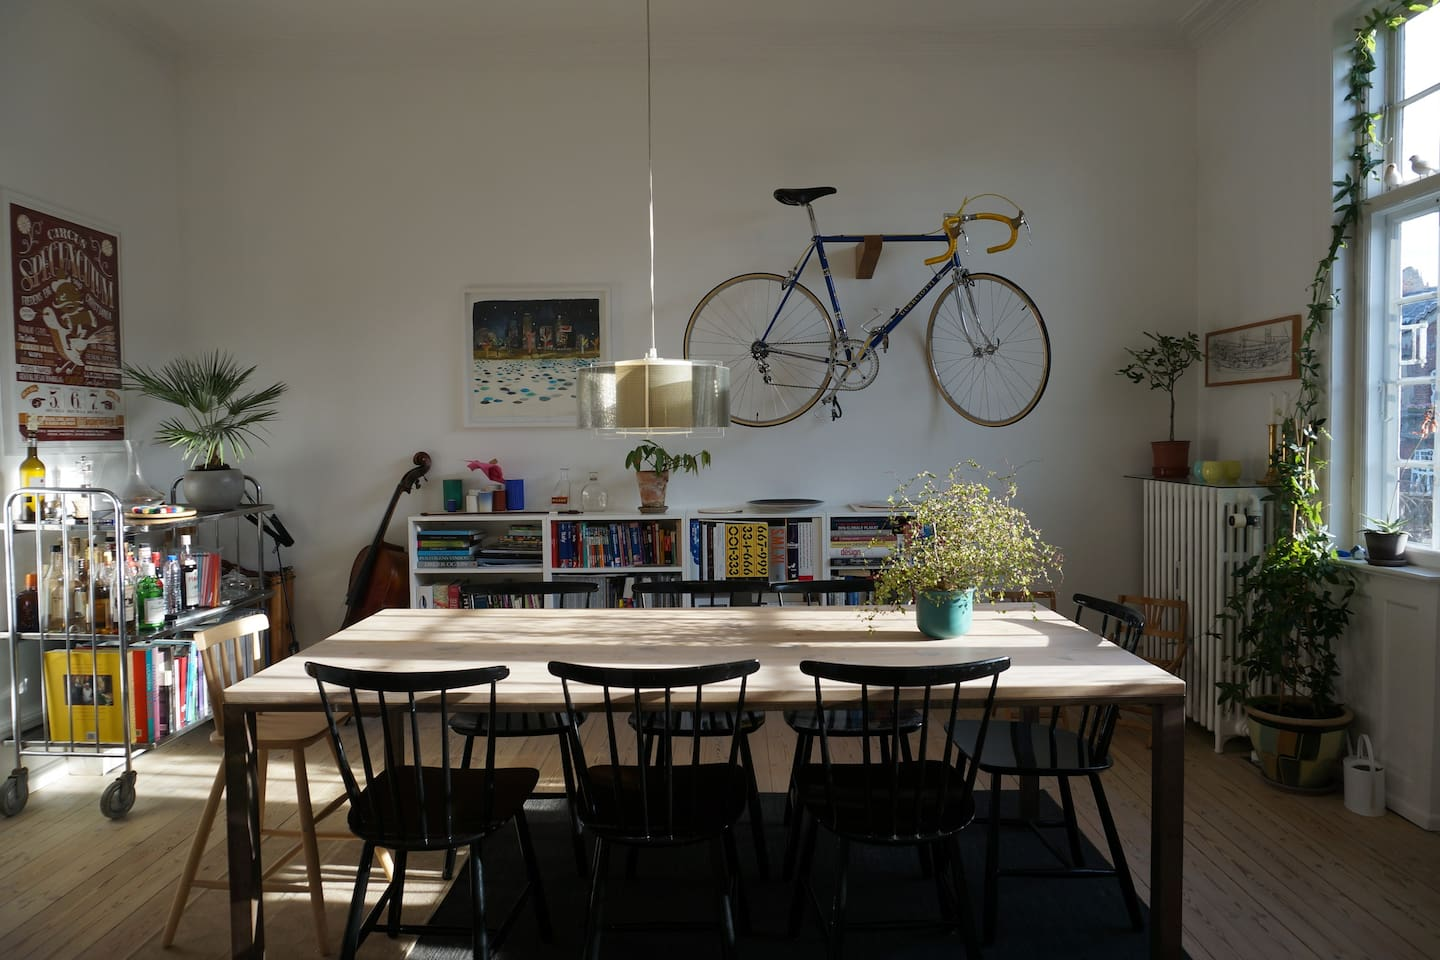 Dining room with lots of light and atmosphere